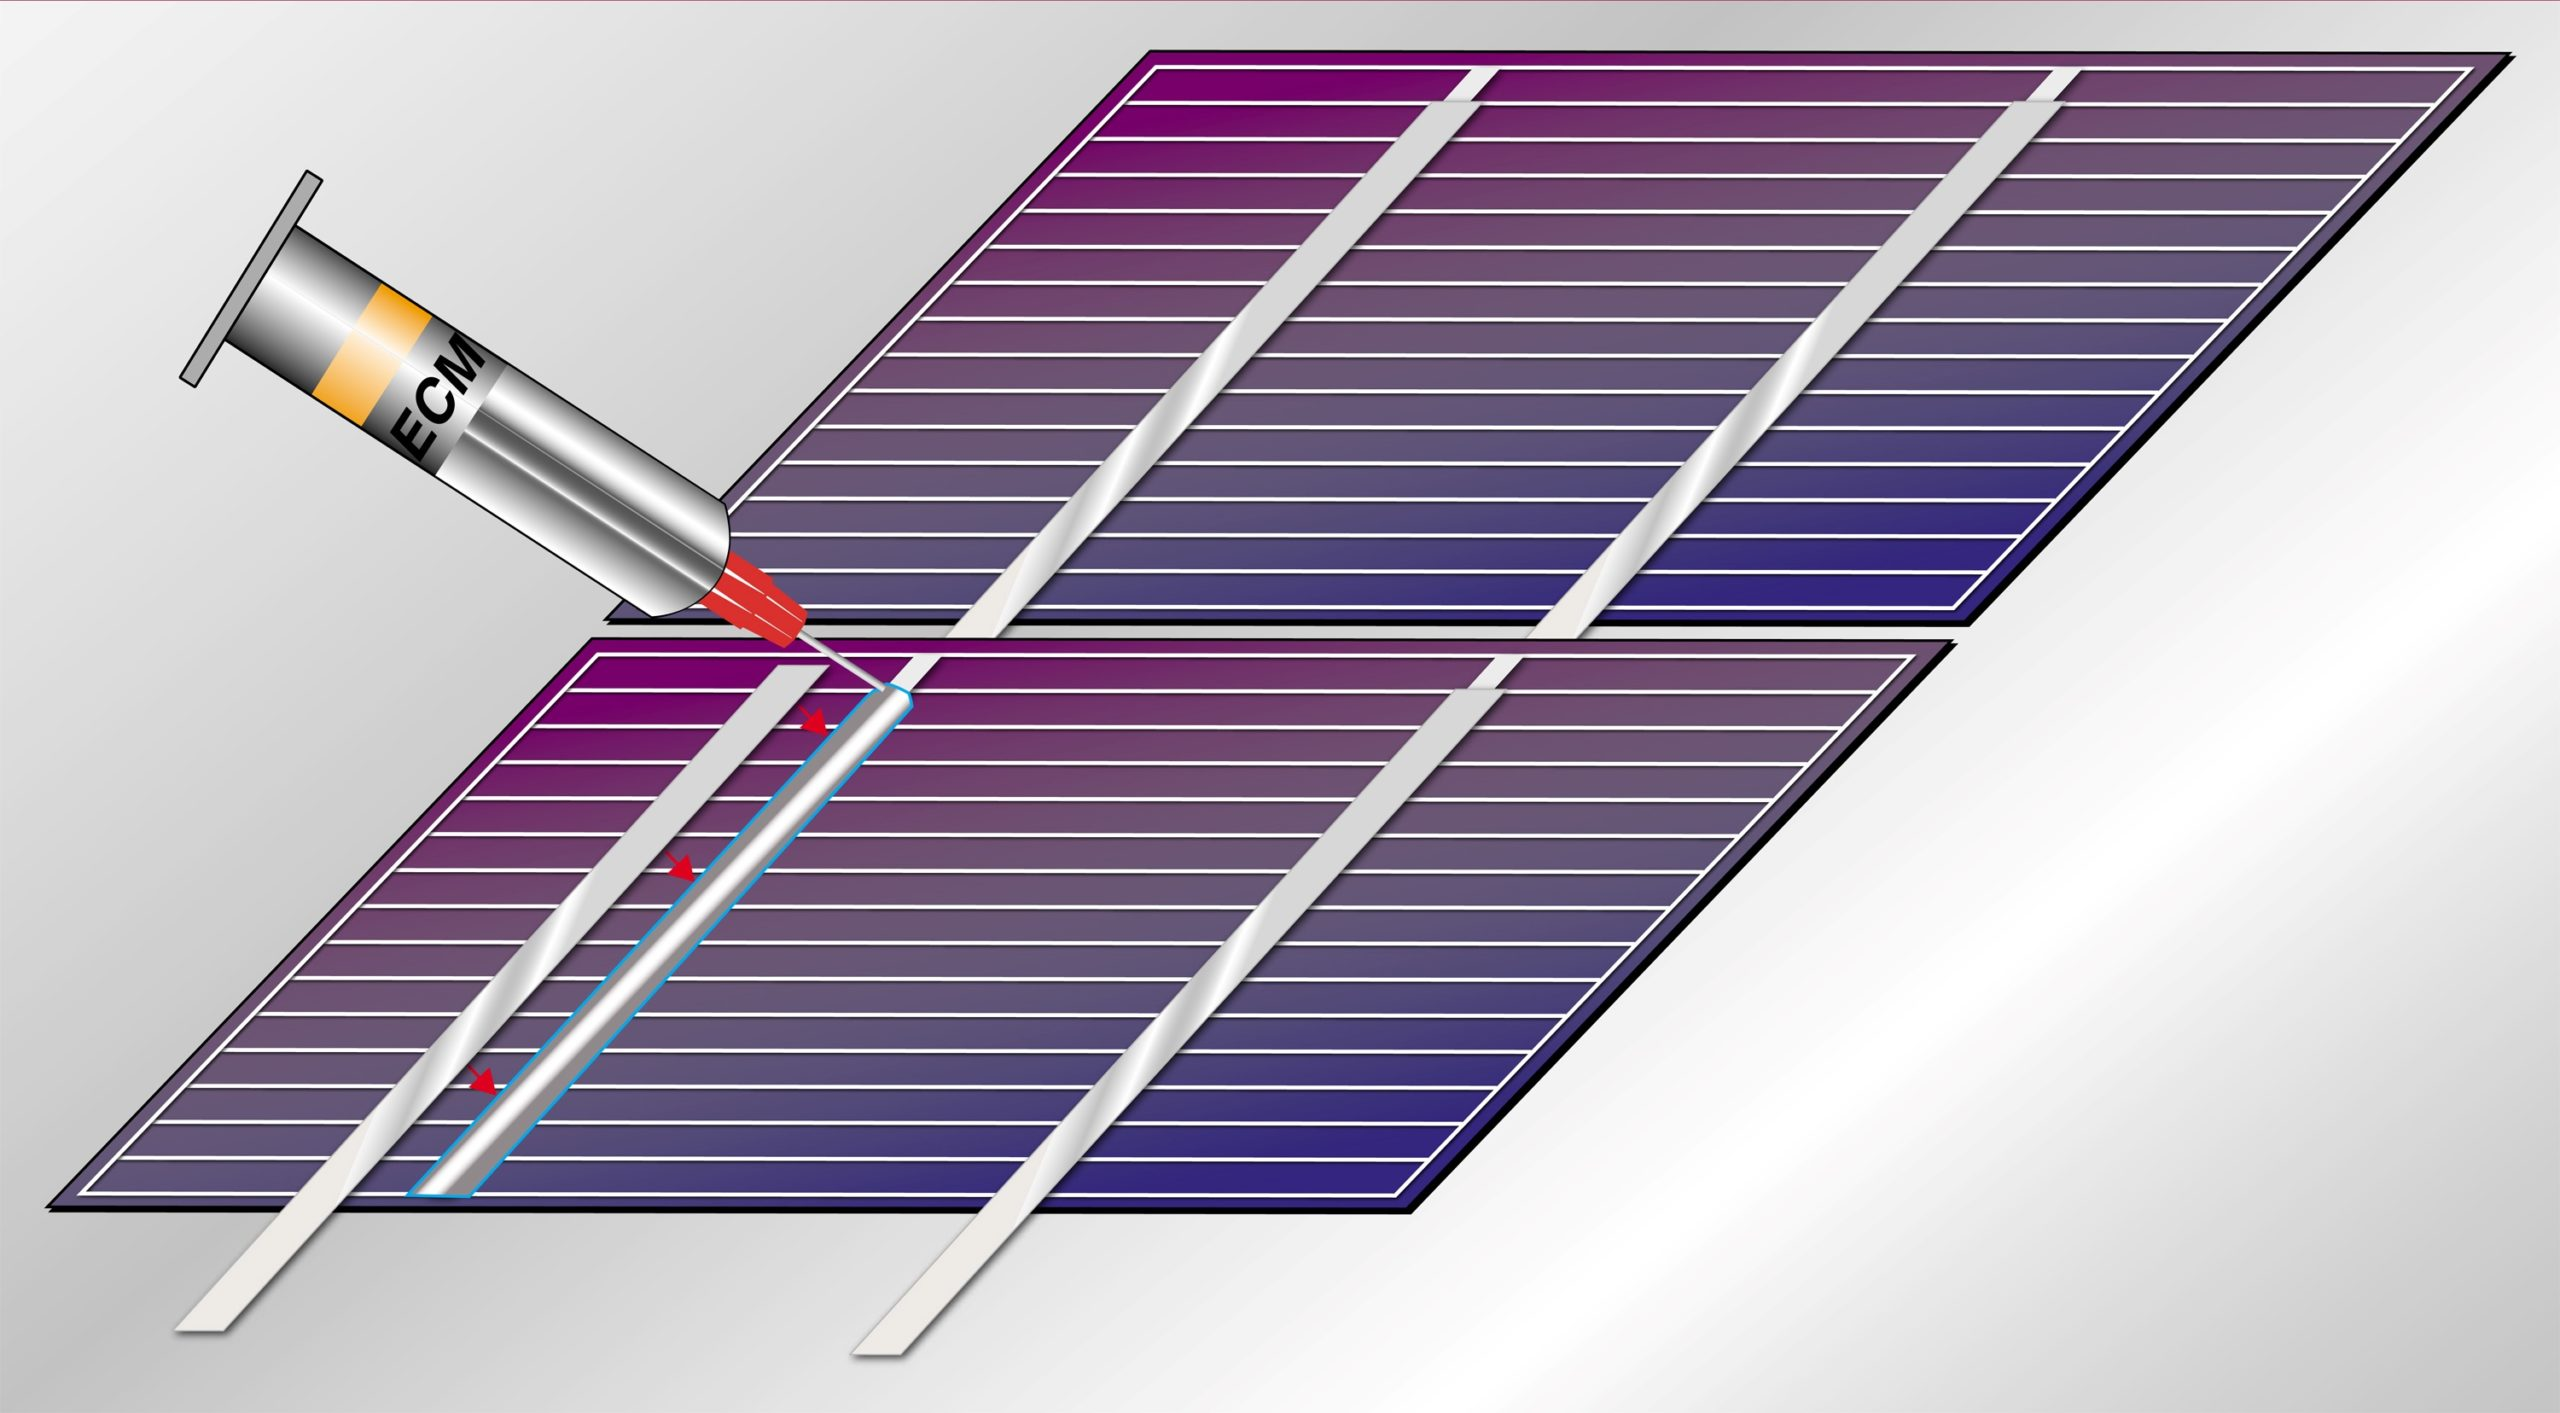 Engineered Material Systems (EMS) has launched a new 561-400 series low-cost 'snap cure' conductive adhesive, which is designed for stringing and shingling crystalline silicon and heterojunction solar modules.